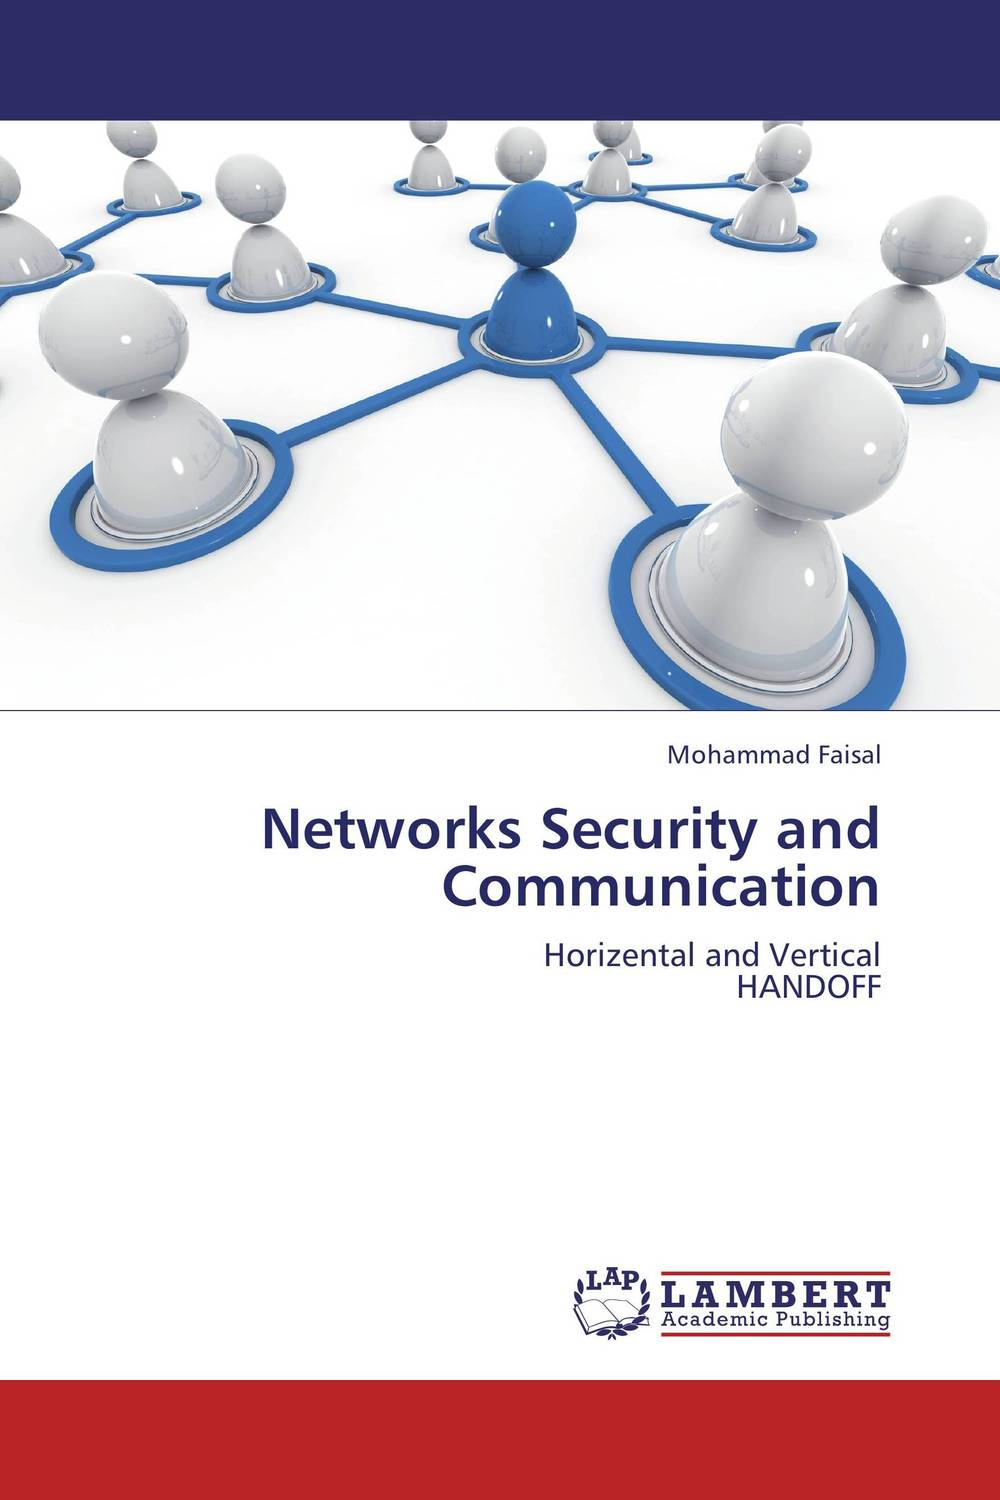 Networks Security and Communication networks security and communication